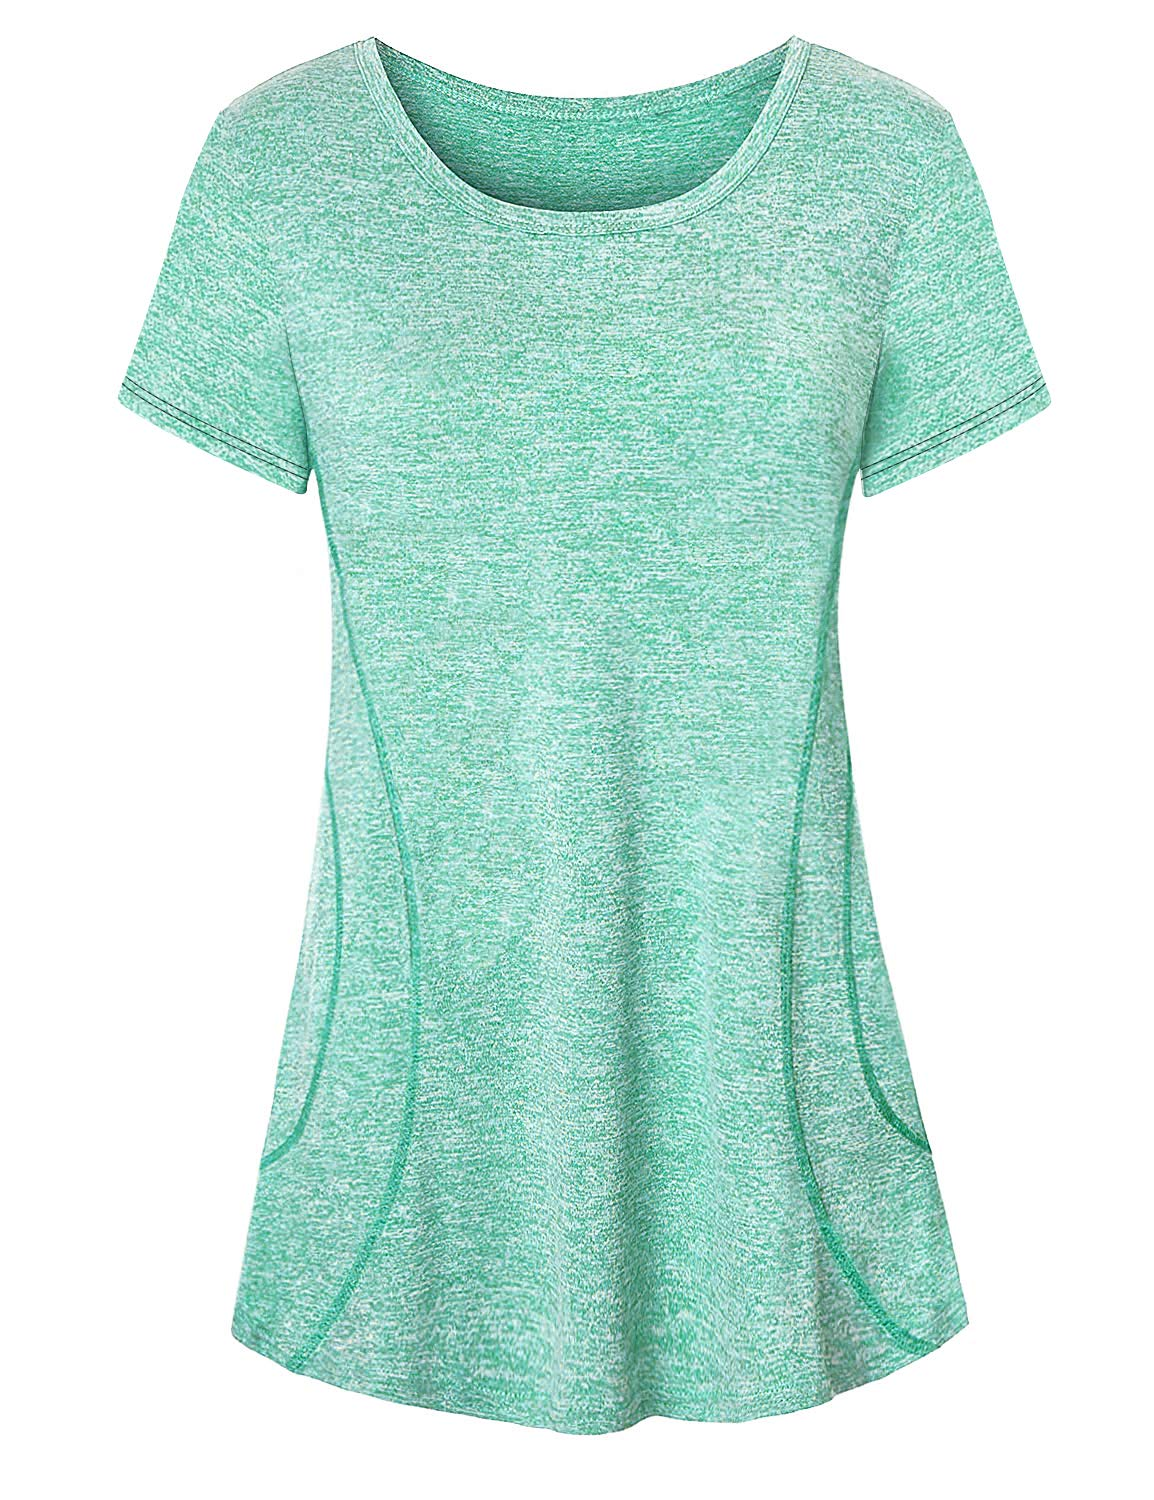 Luranee Athleisure Wear for Women, Cute Exercises Clothes Casual Fancy Cool Knit Polyester Tunic Tops Vintage Soft Unique Stylish Light Basic Nice Flowy Dressy Dry Fit Jersey Outfits Green Medium by Luranee